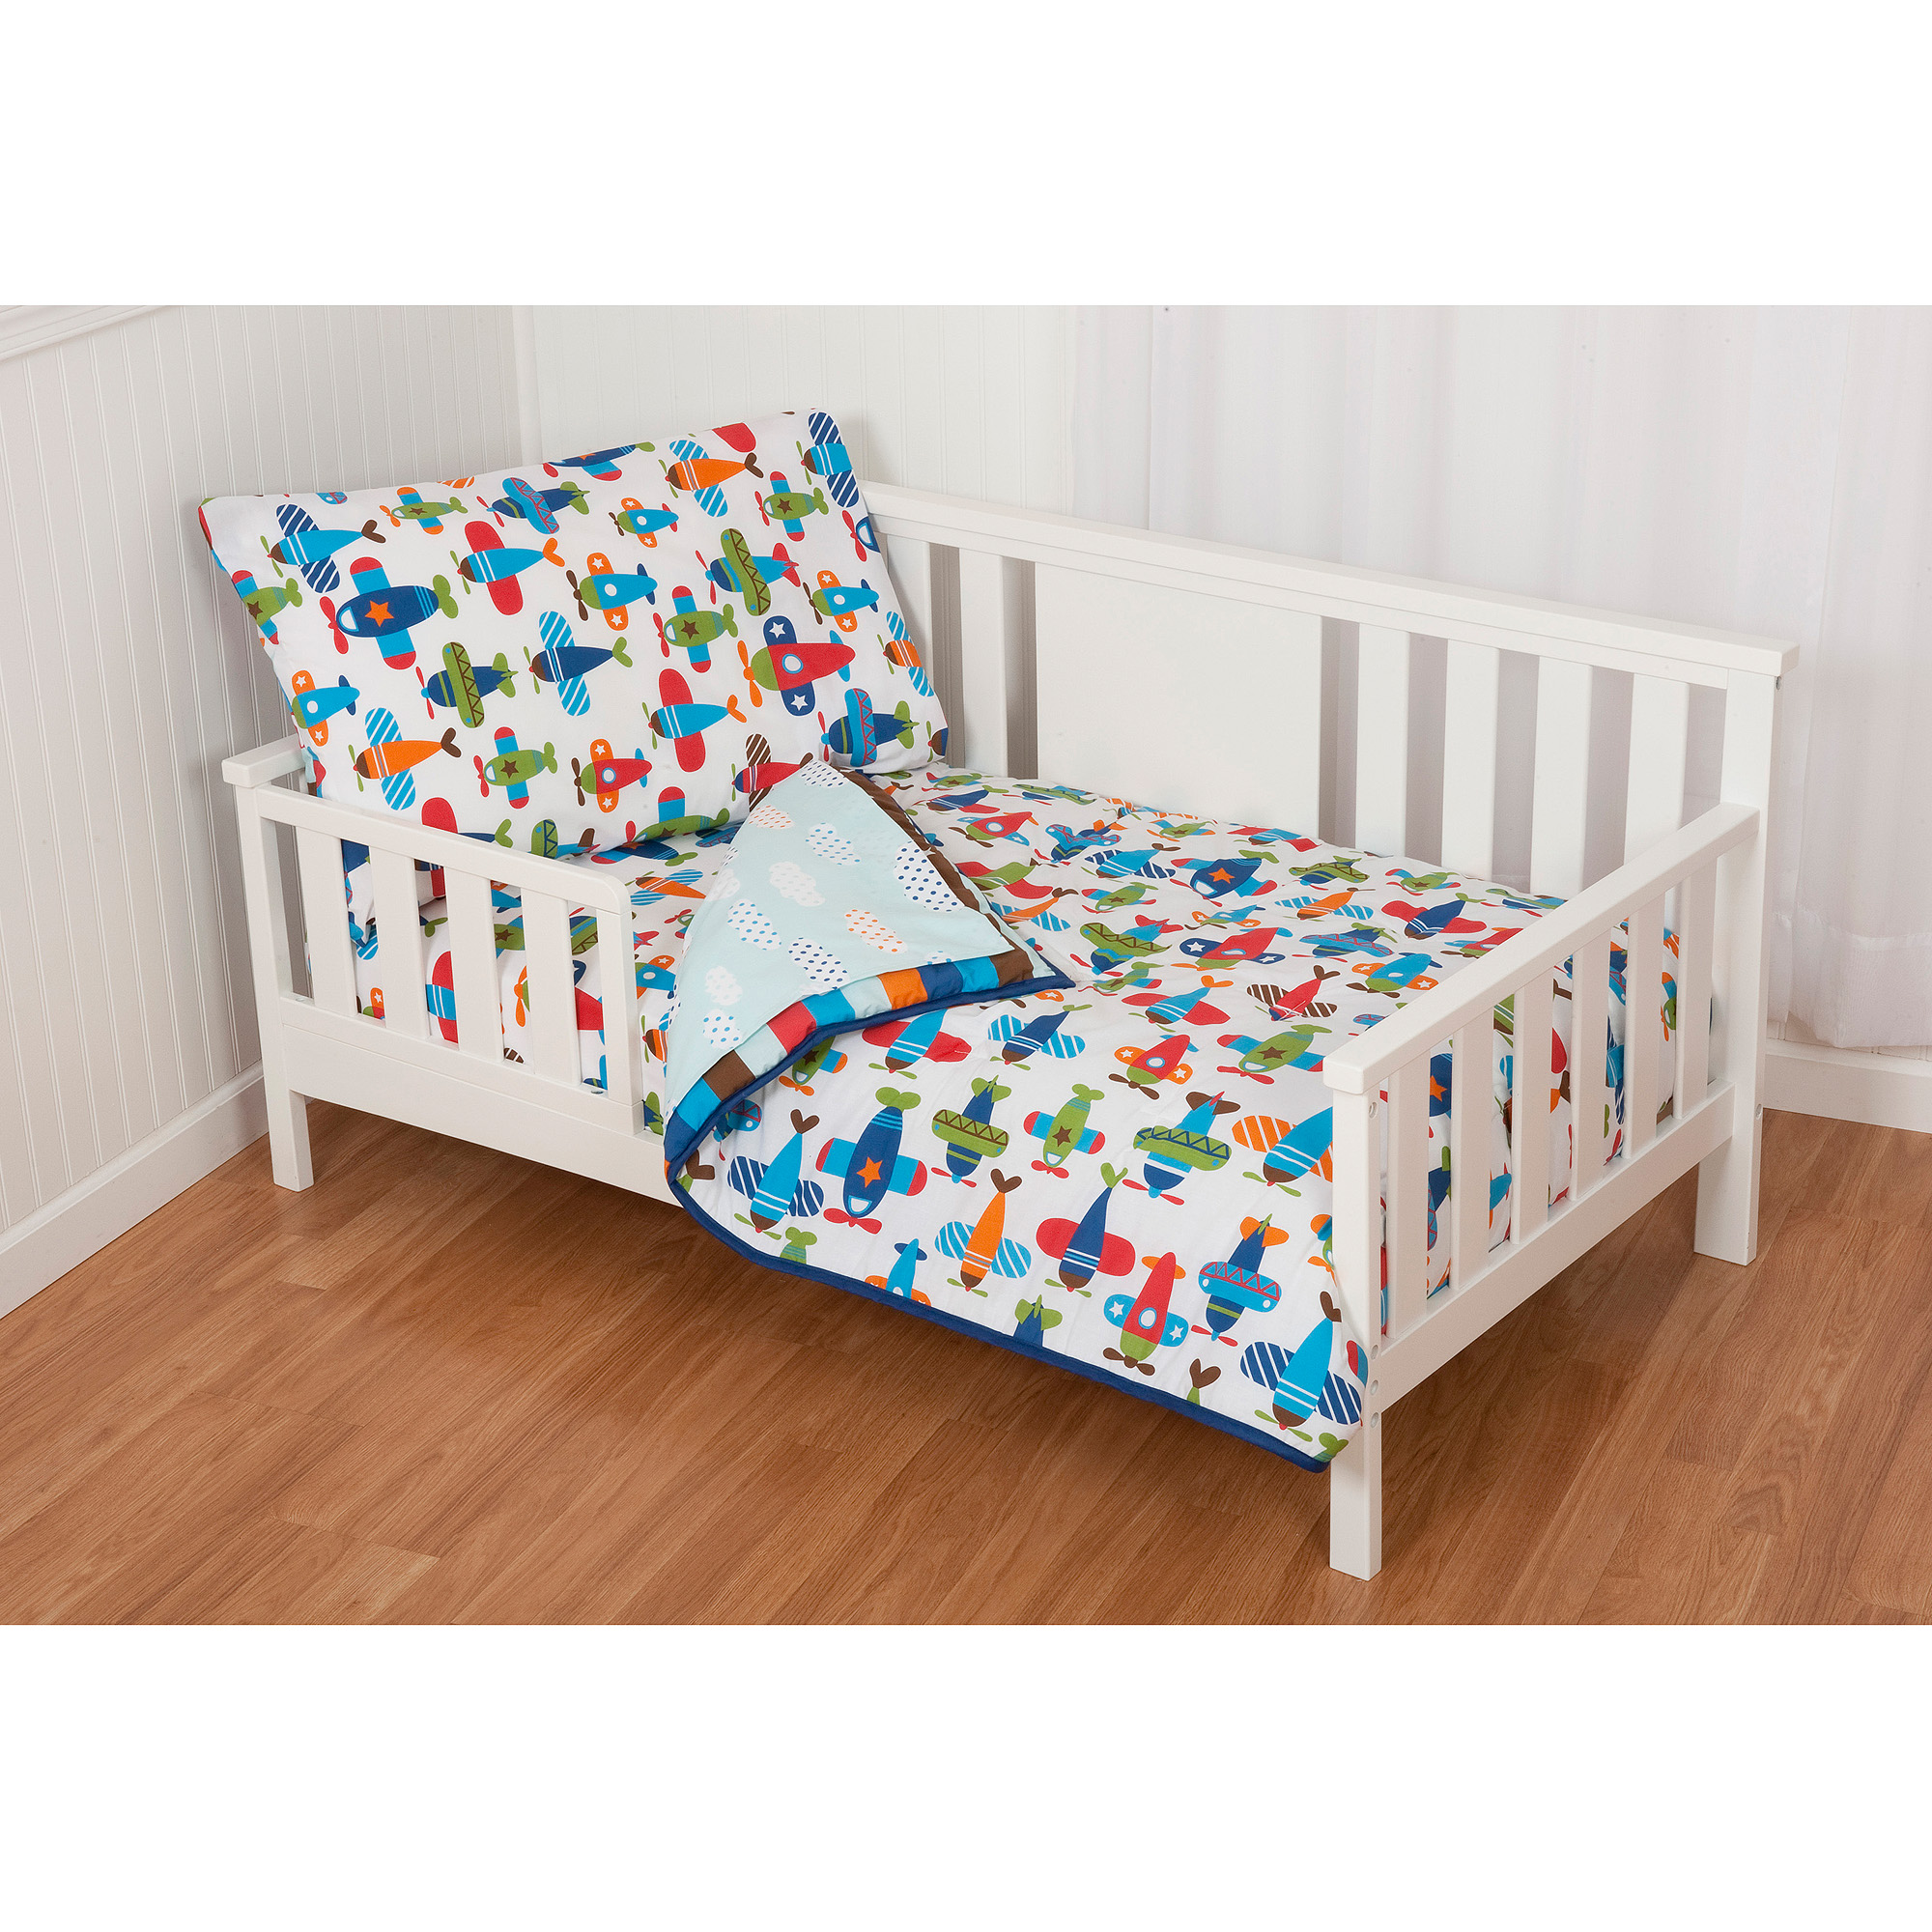 Sumersault Taking Flight 4-Piece Toddler Bedding Set